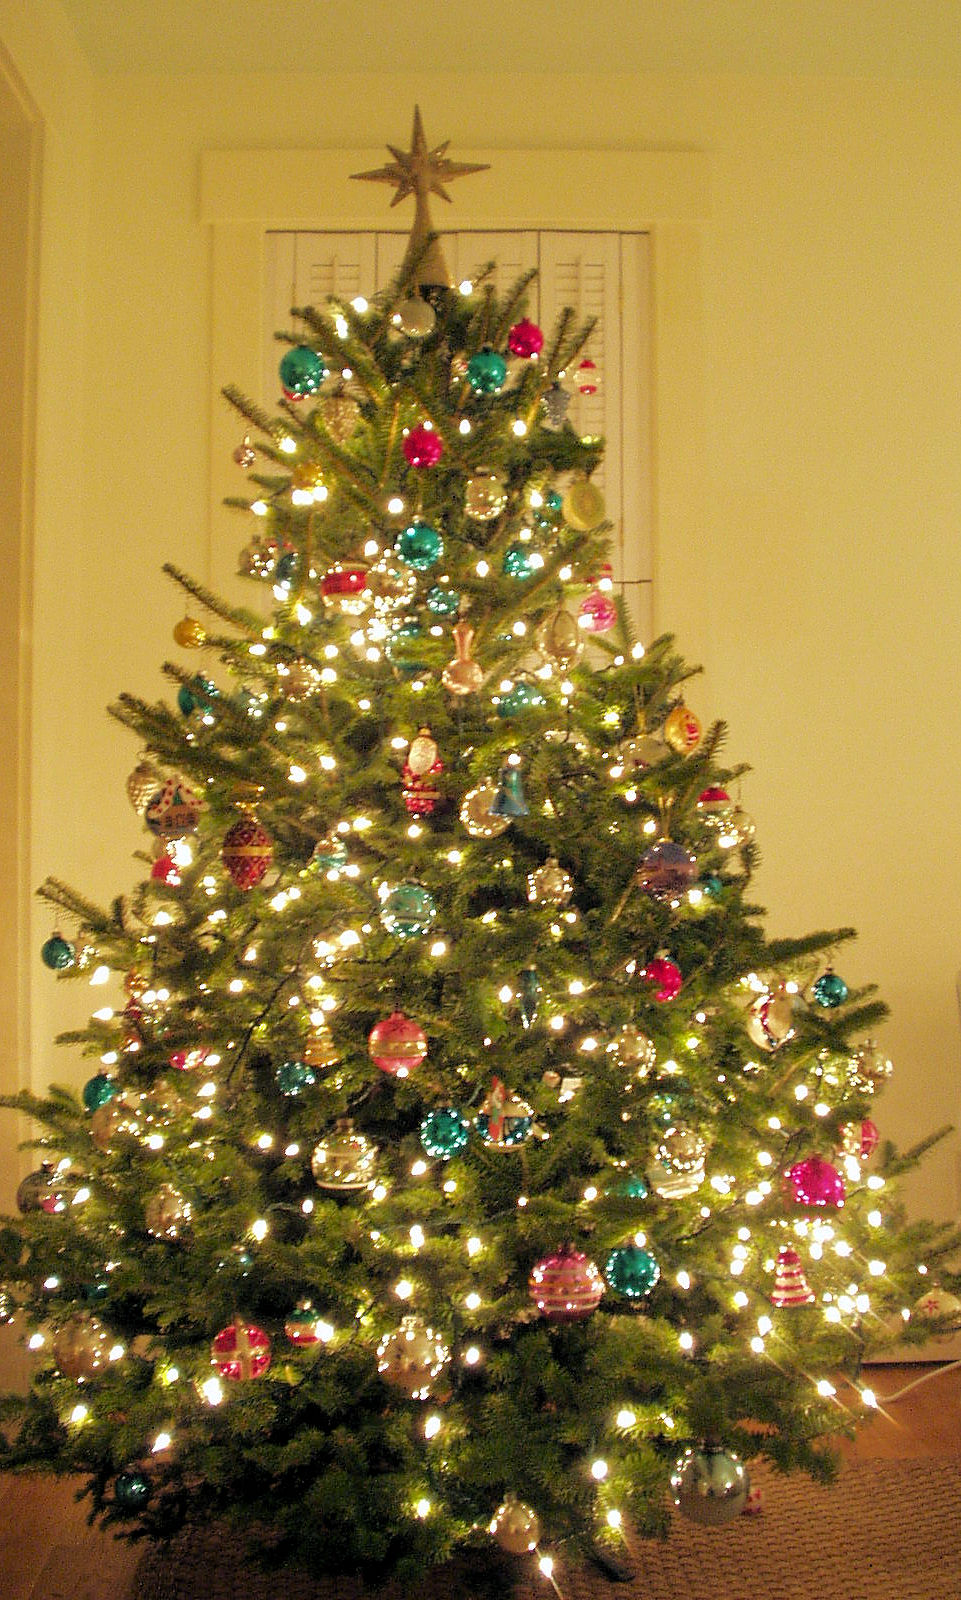 BOXWOOD TERRACE: Before and After: The Christmas Tree